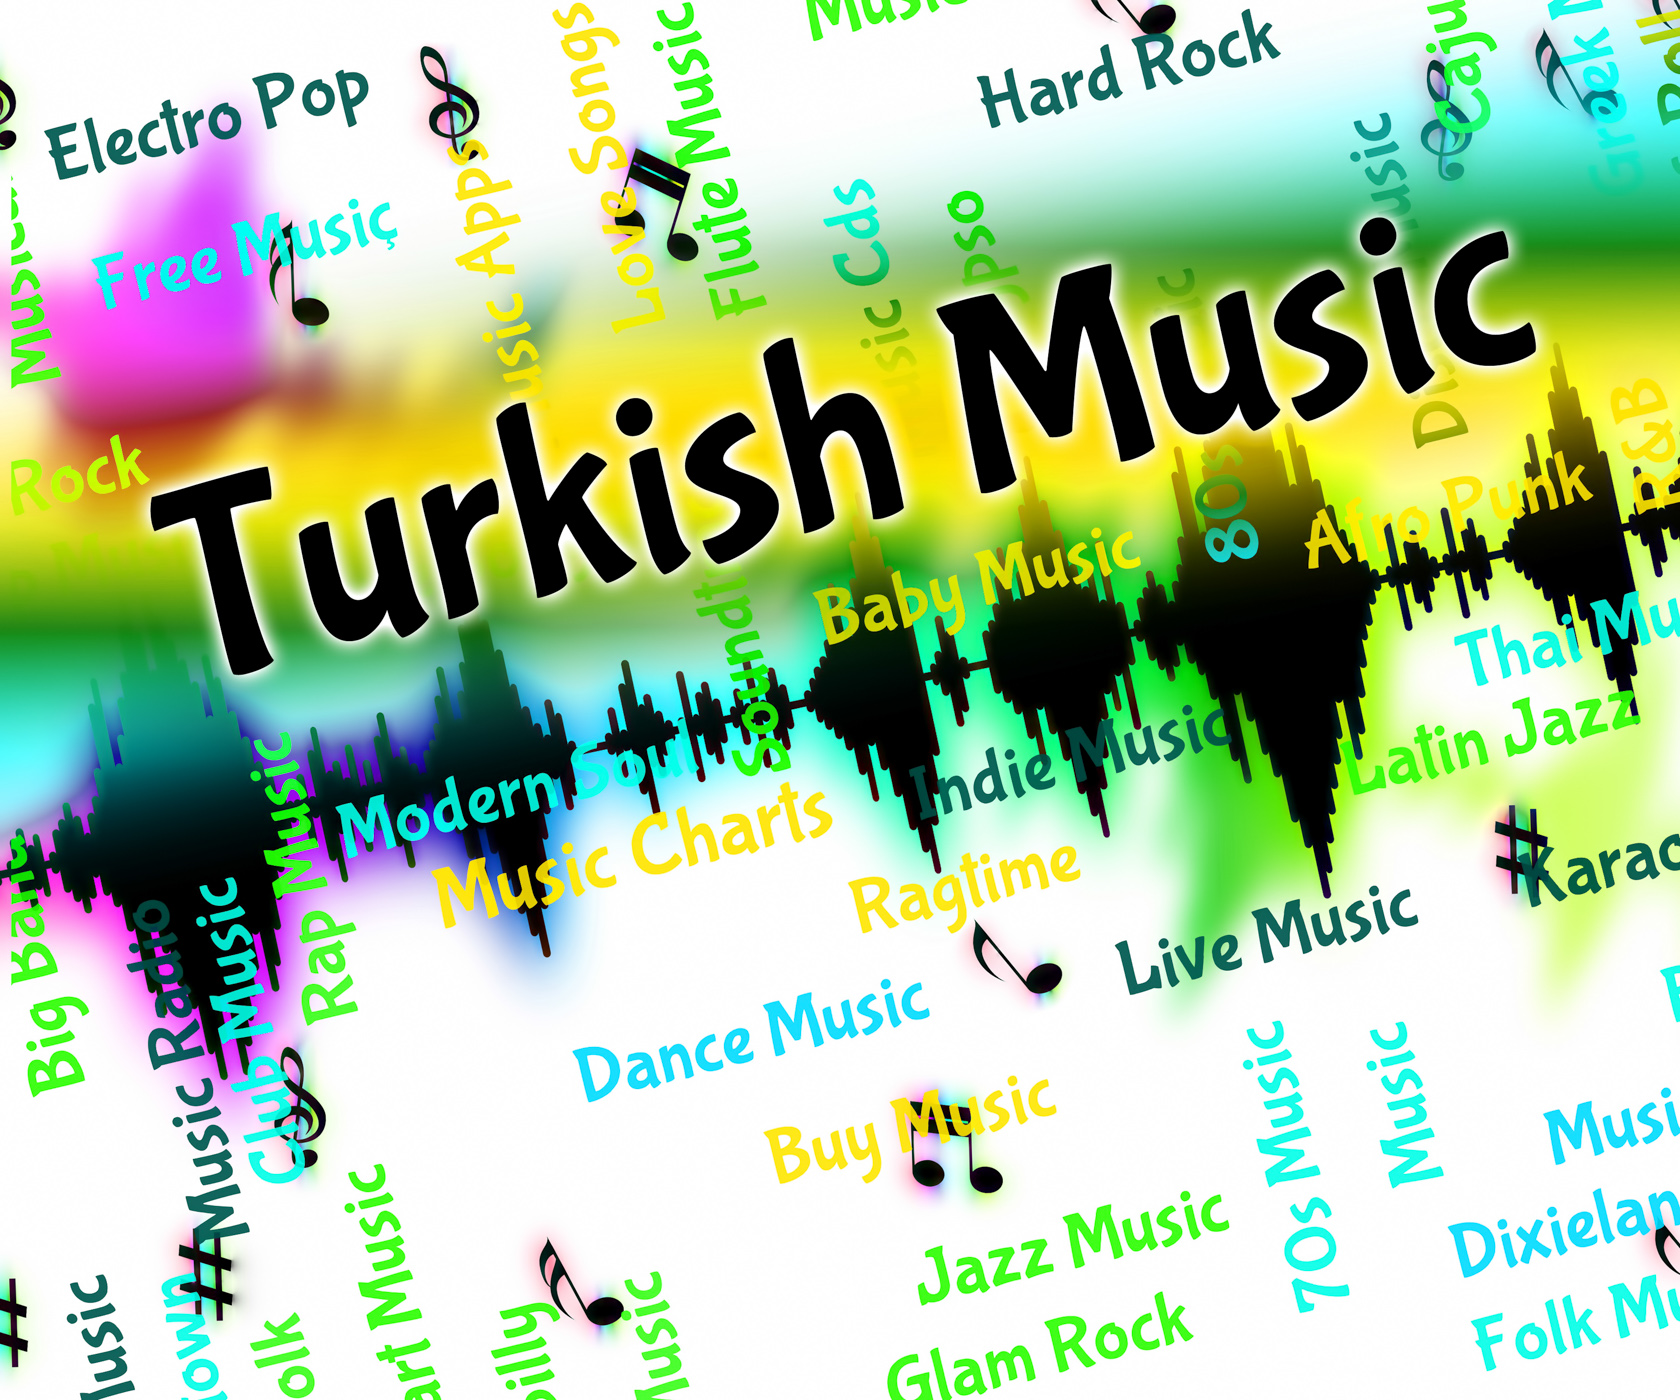 Turkish music indicates central asian and arabic photo